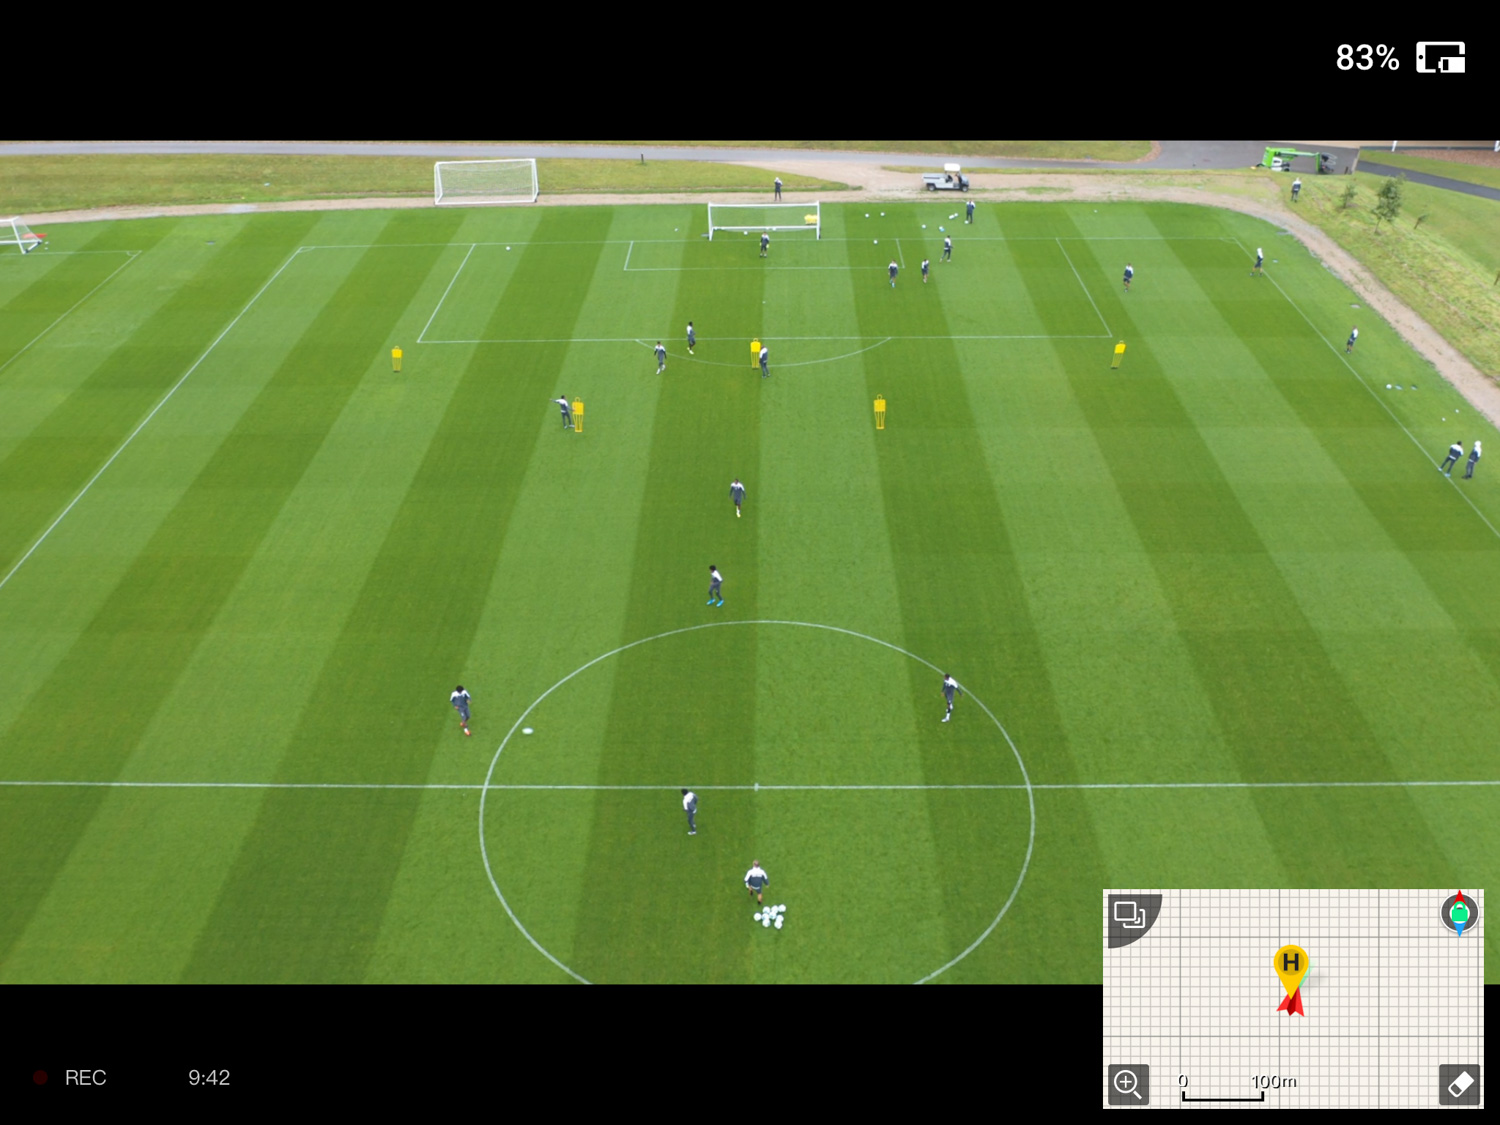 drone_filming_aerial_imagery_north_wales_ogc_nice-1.jpg